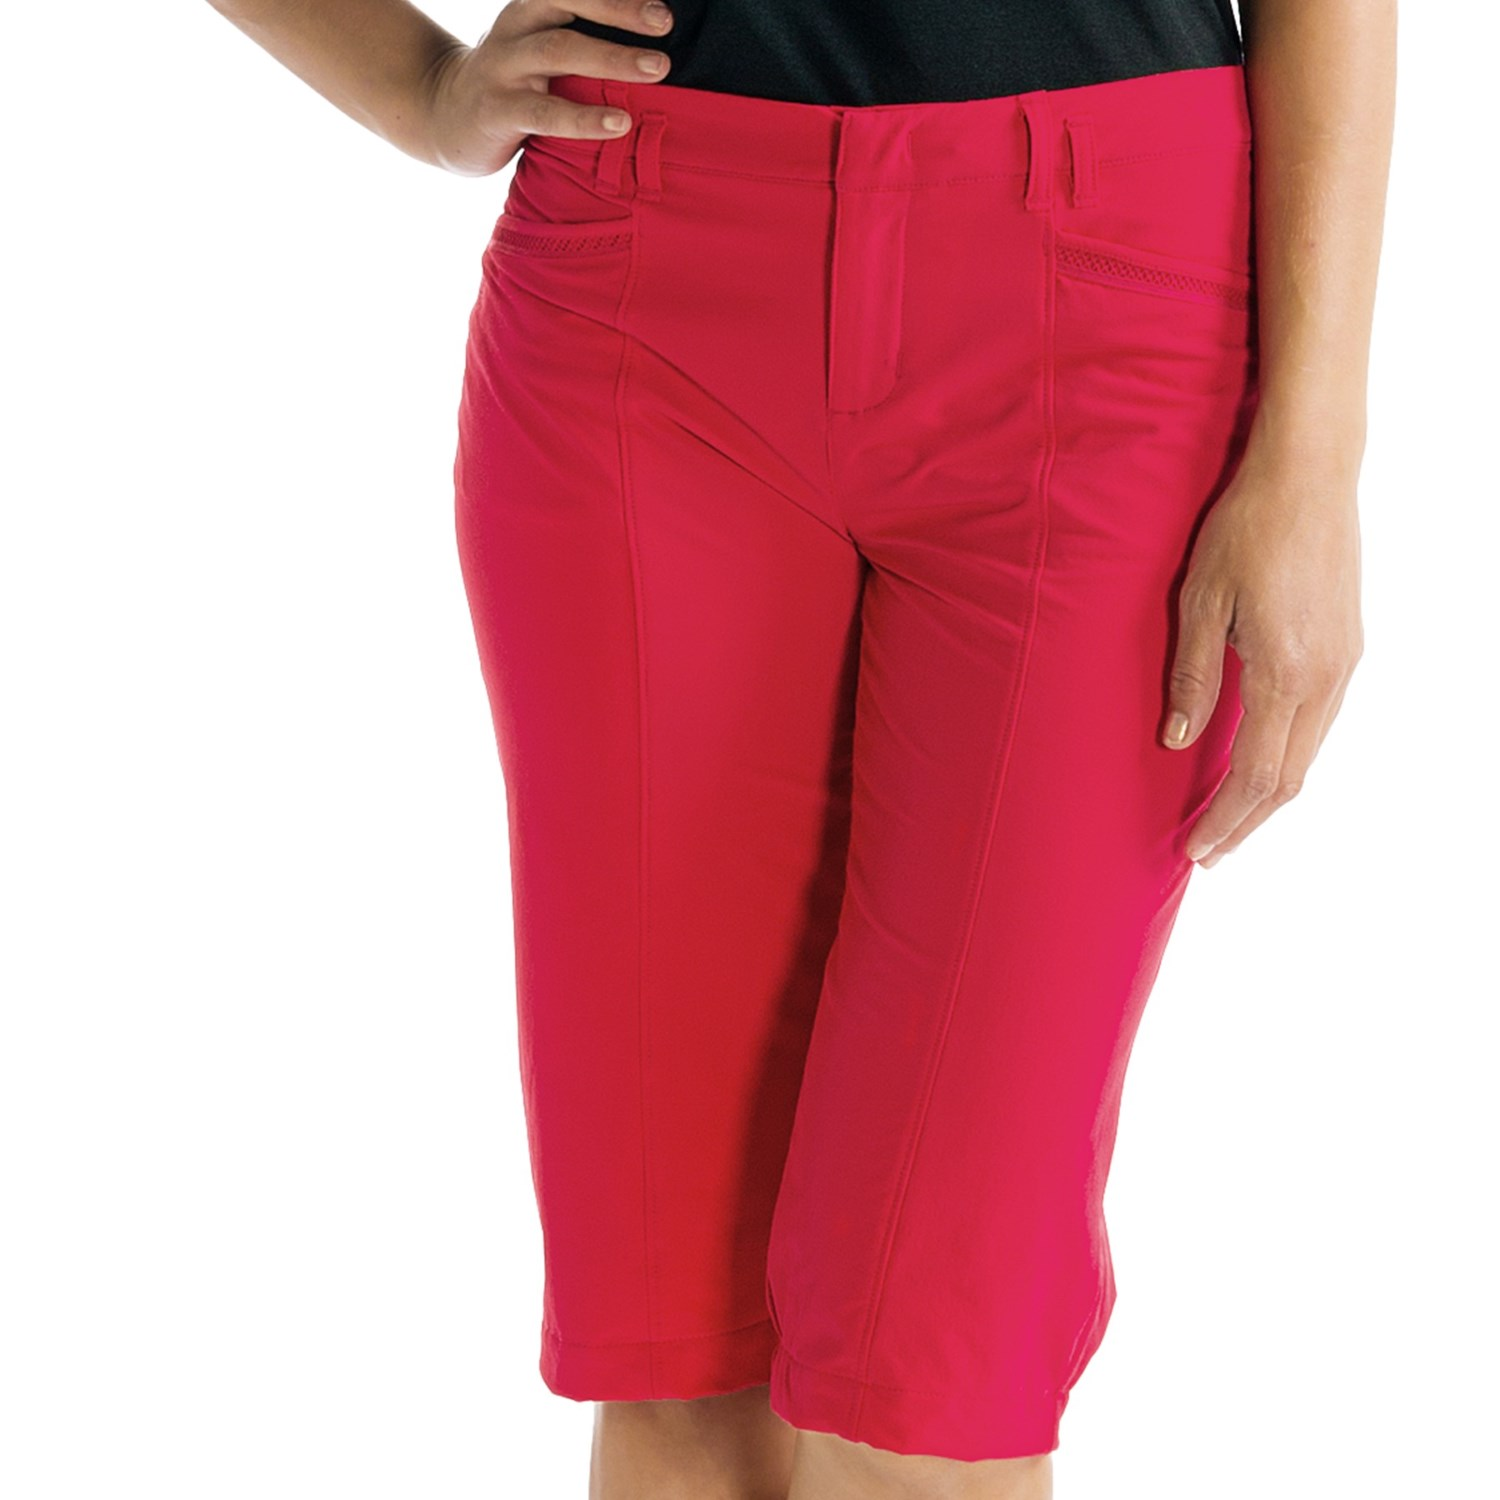 Clothing stores online :: Lole womens clothing